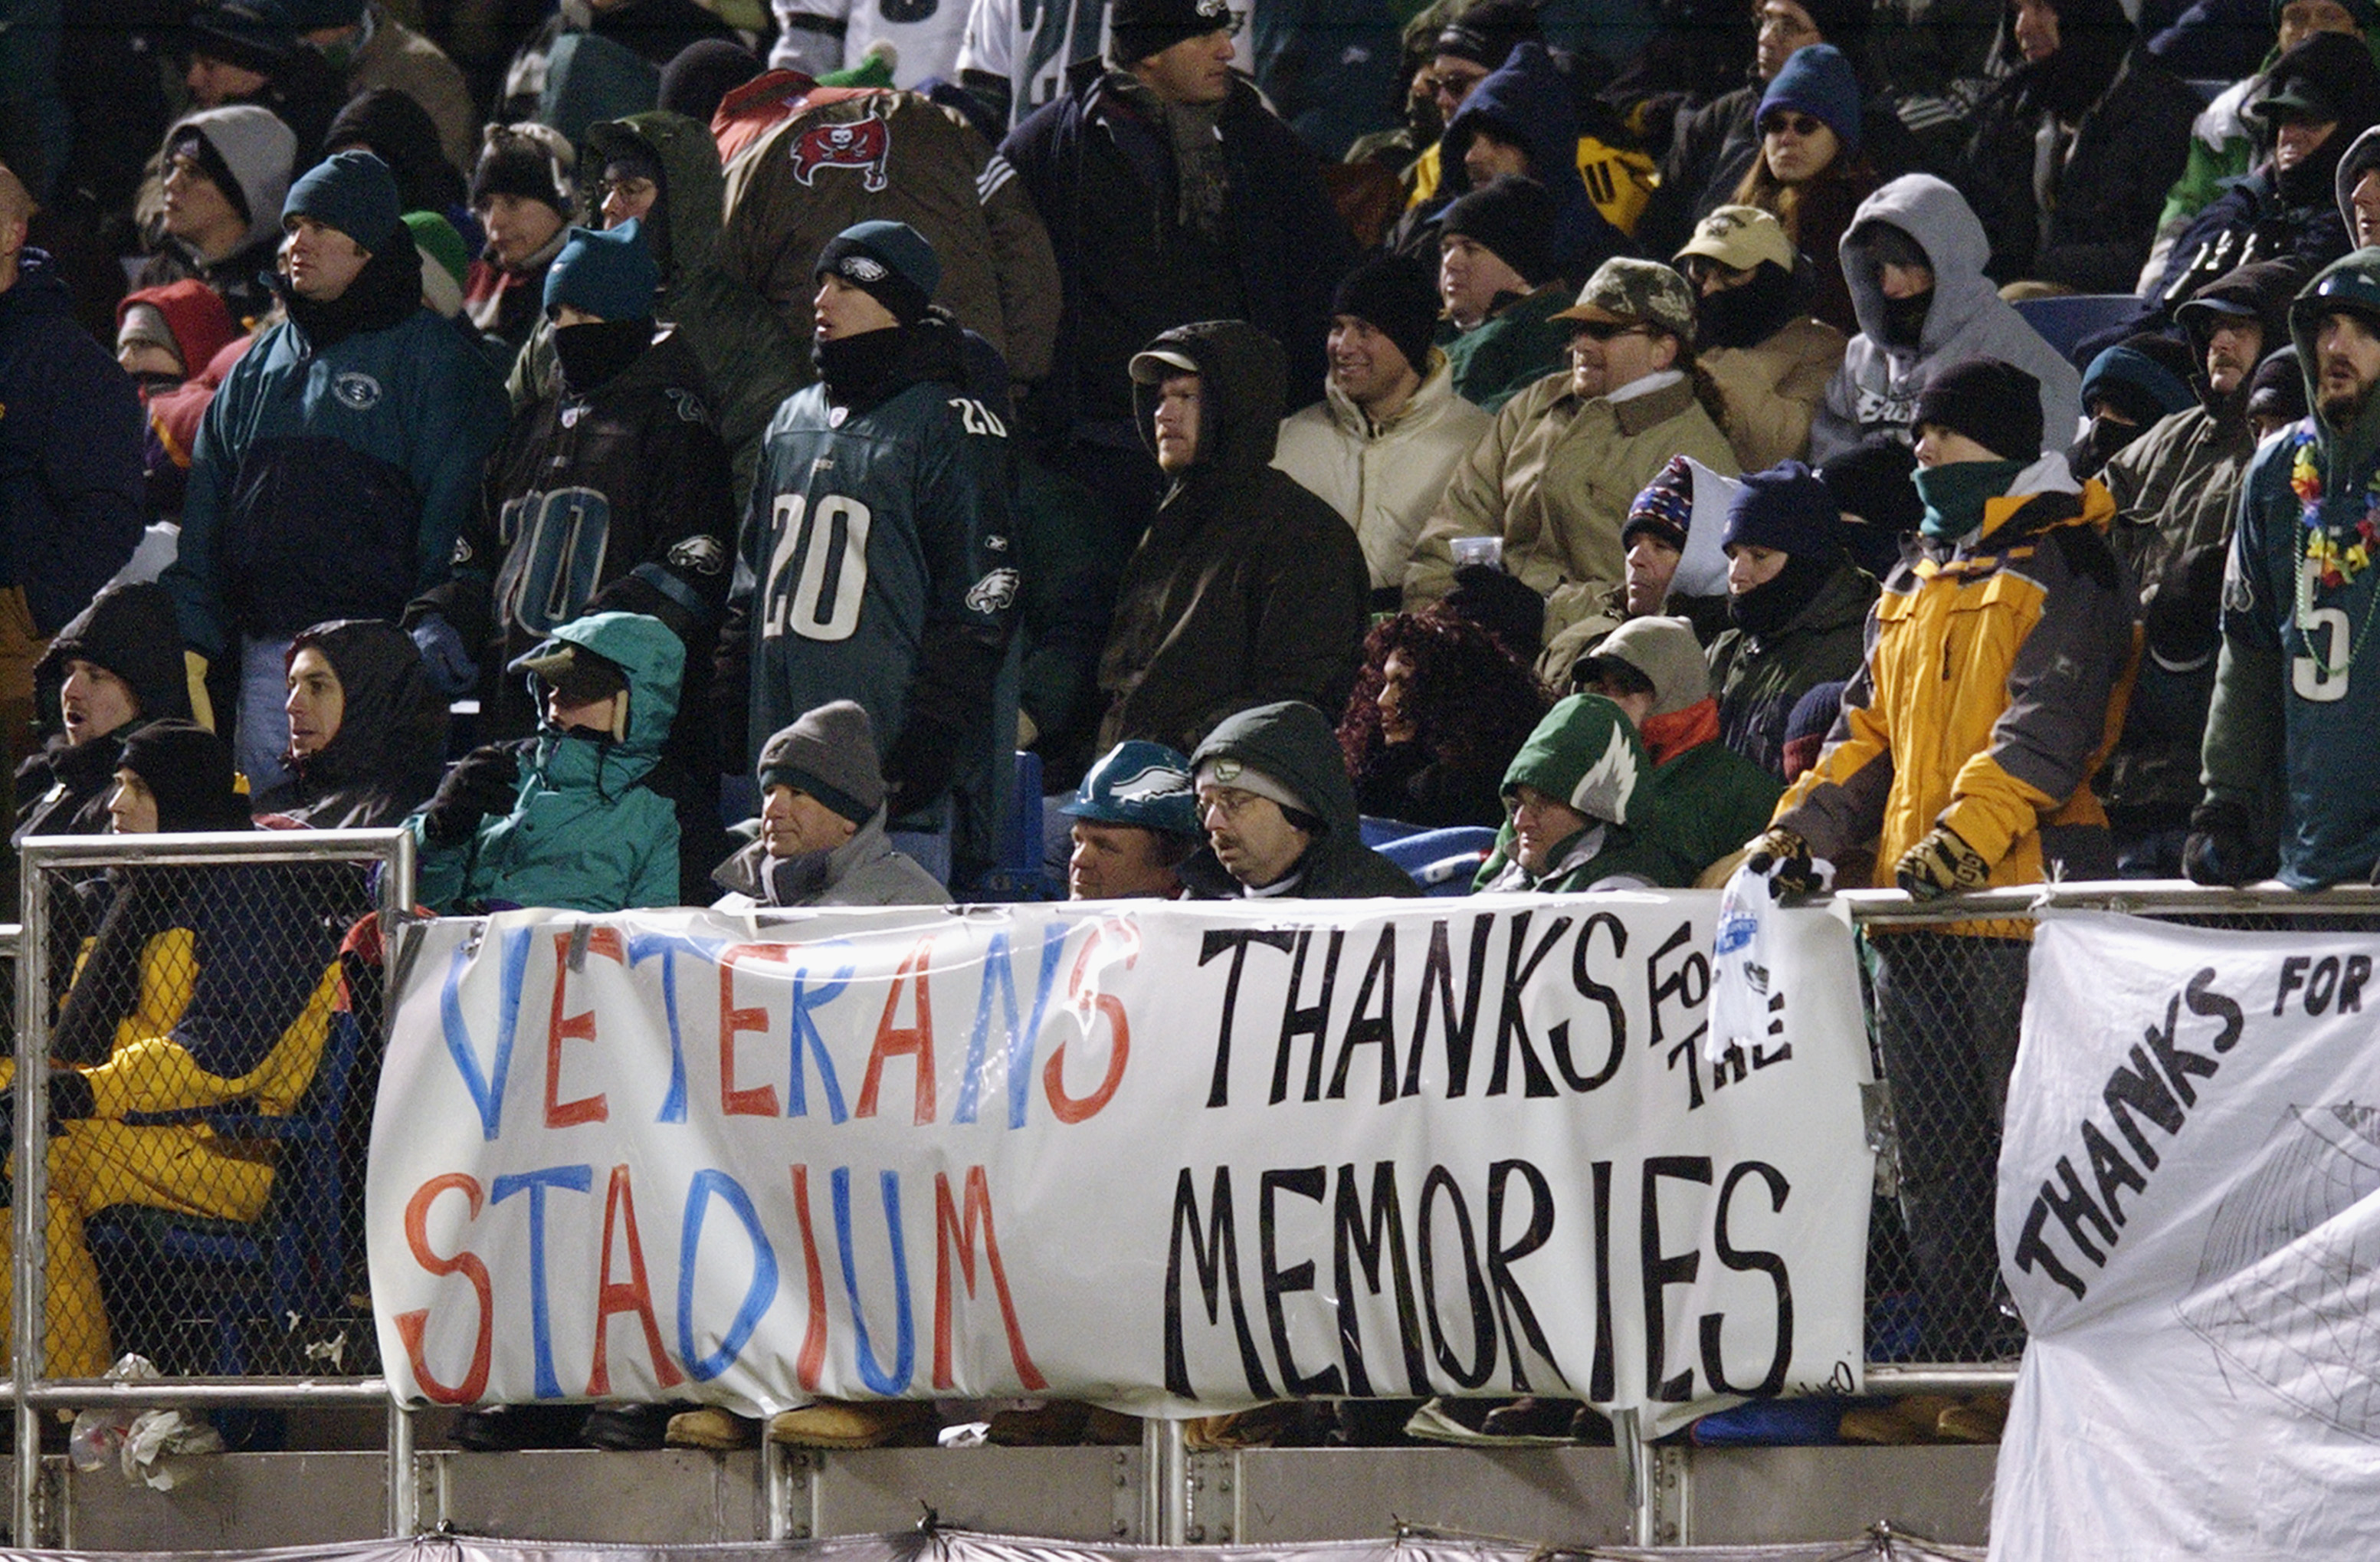 PHILADELPHIA - JANUARY 19:  Fans show their appreciation to Veterans Stadium during the NFC Championship game between the Tampa Bay Buccaneers and the Philadelphia Eagles on the last game to be played at Veterans Stadium on January 19, 2003 in Philadelphi